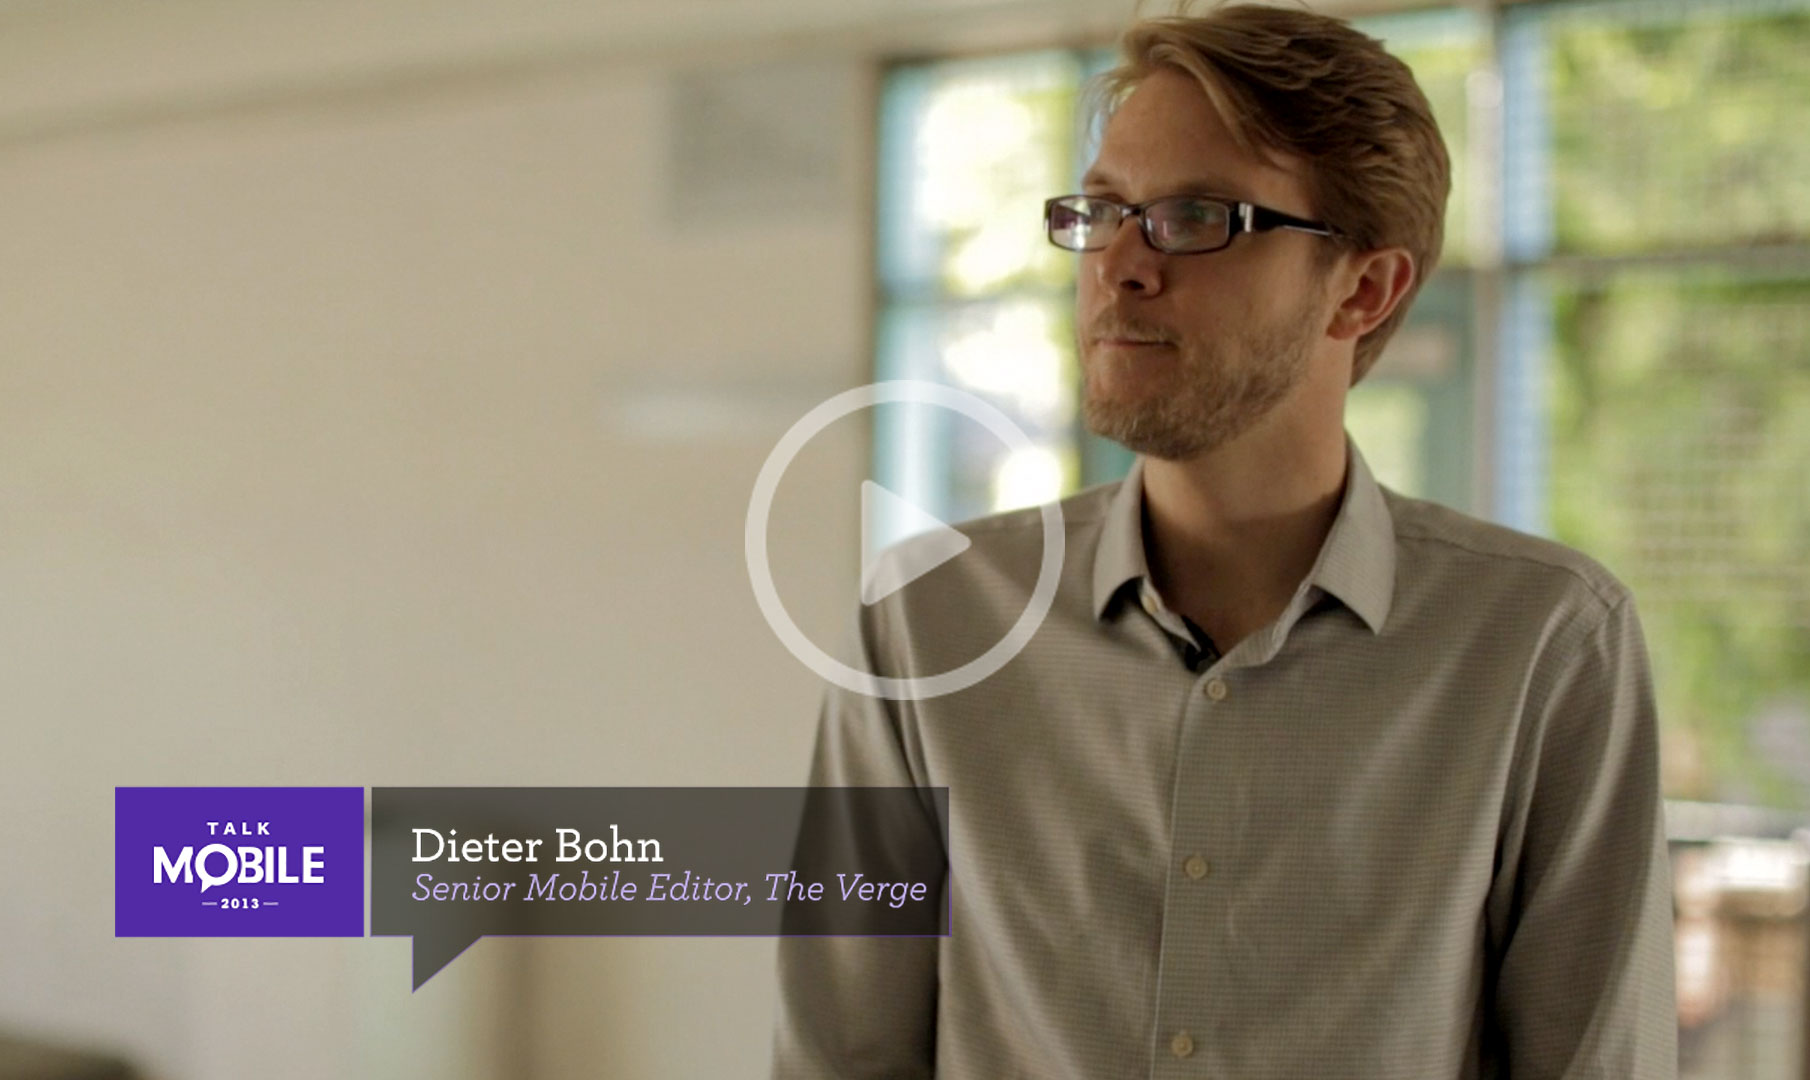 Watch Dieter Bohn talk about how hardware changes.